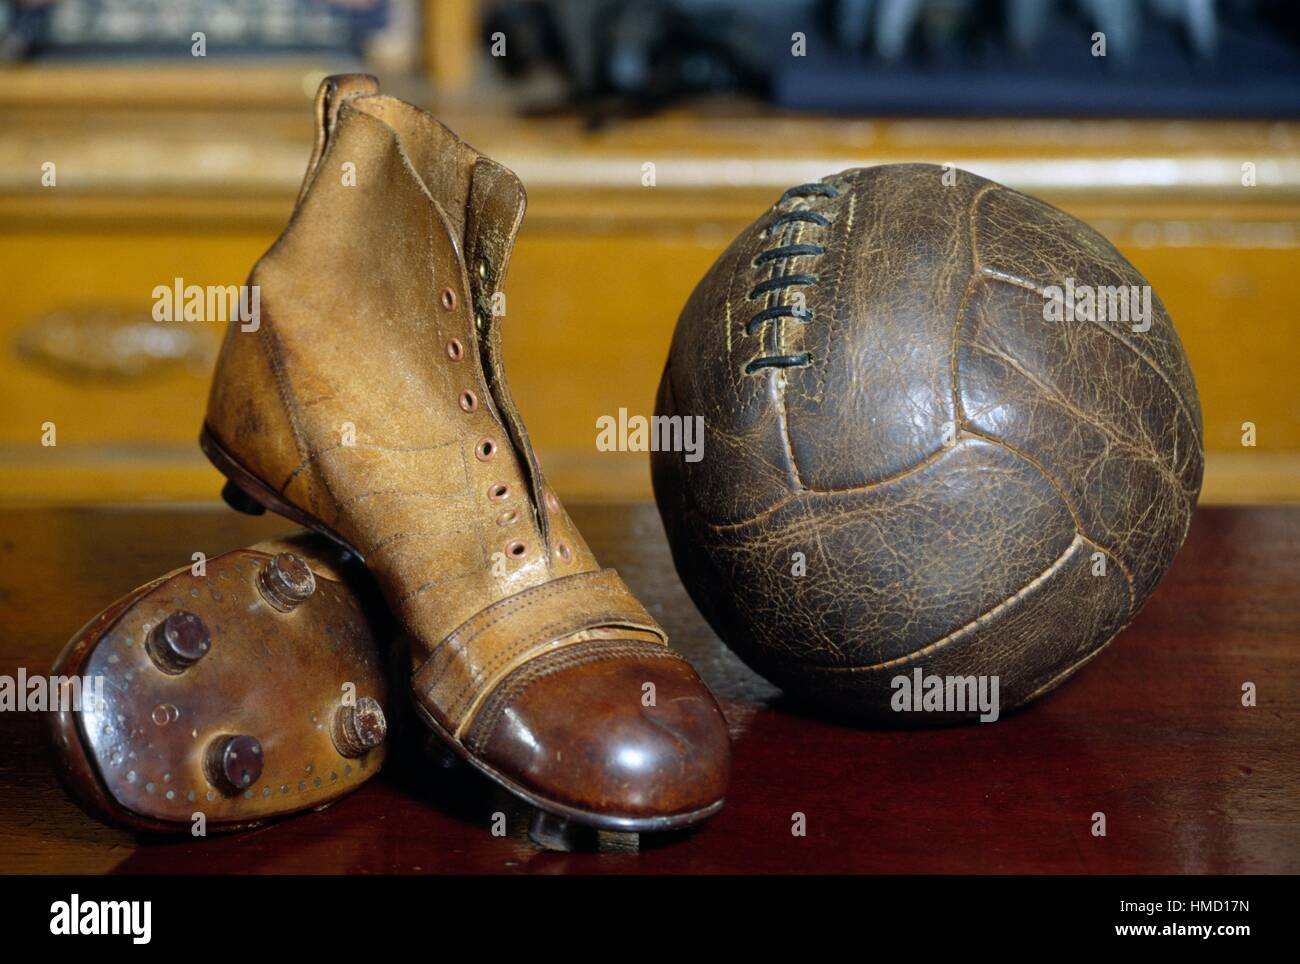 Vintage soccer boots and ball, Beamish Open Air Museum, County Durham,  England,